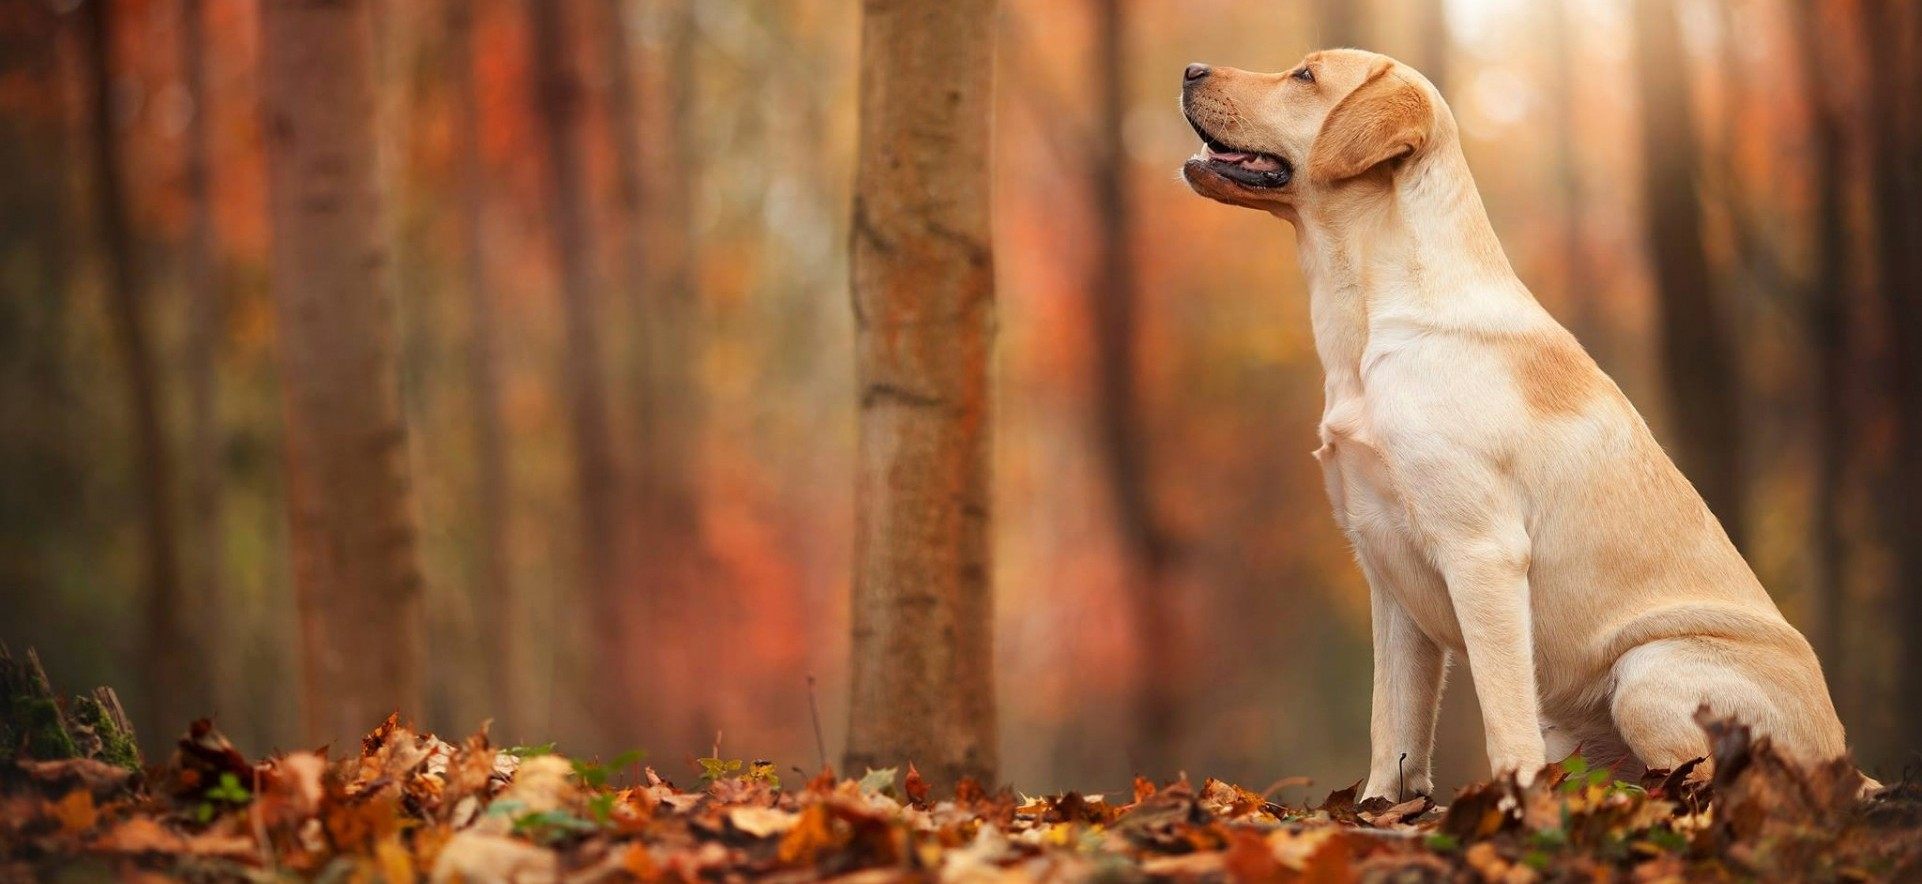 Dog-watching-the-leaf (1)